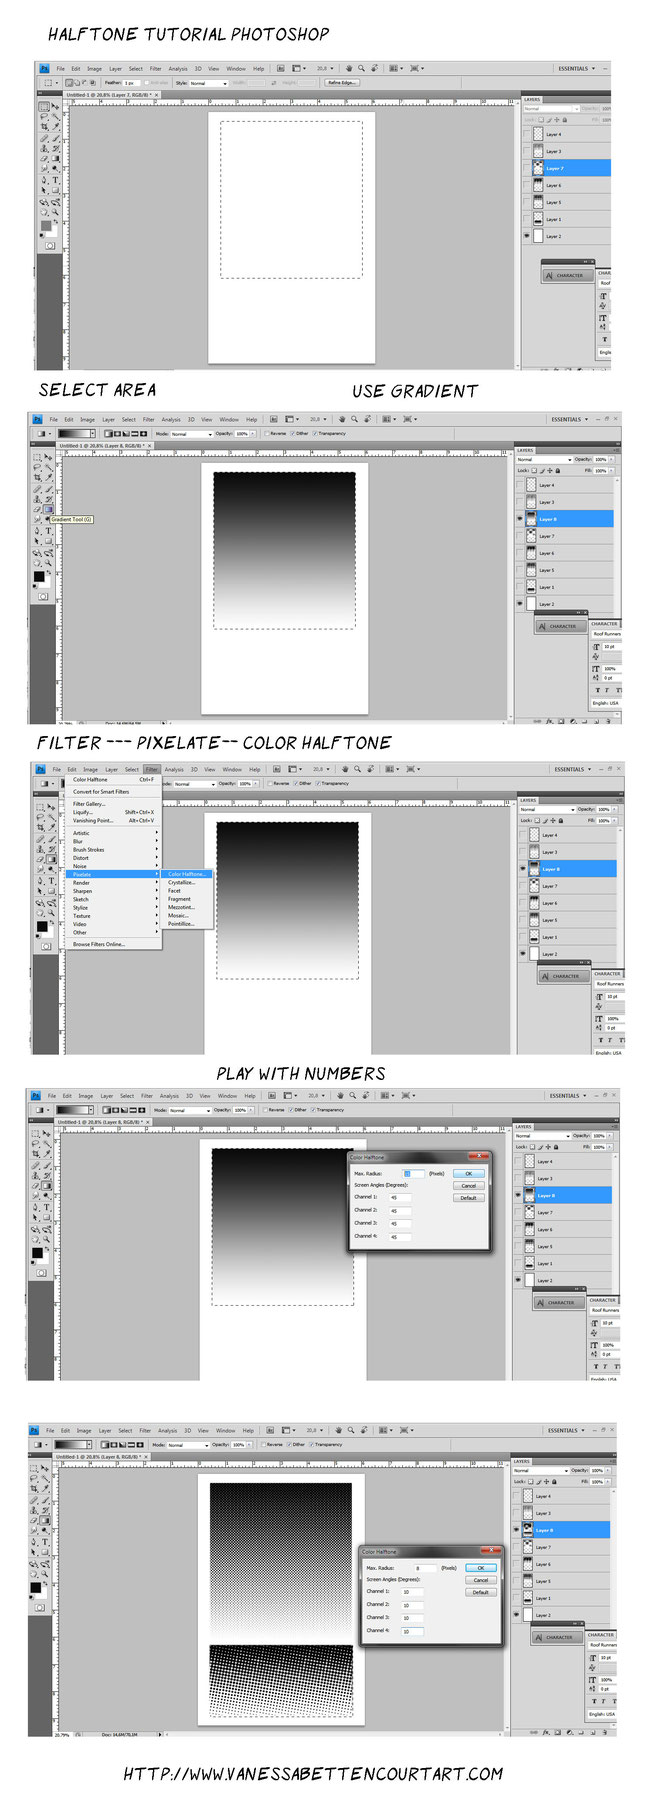 half tone color tutorial comic book halftone tutorial halftone photoshop easy tutorial gradient comic page